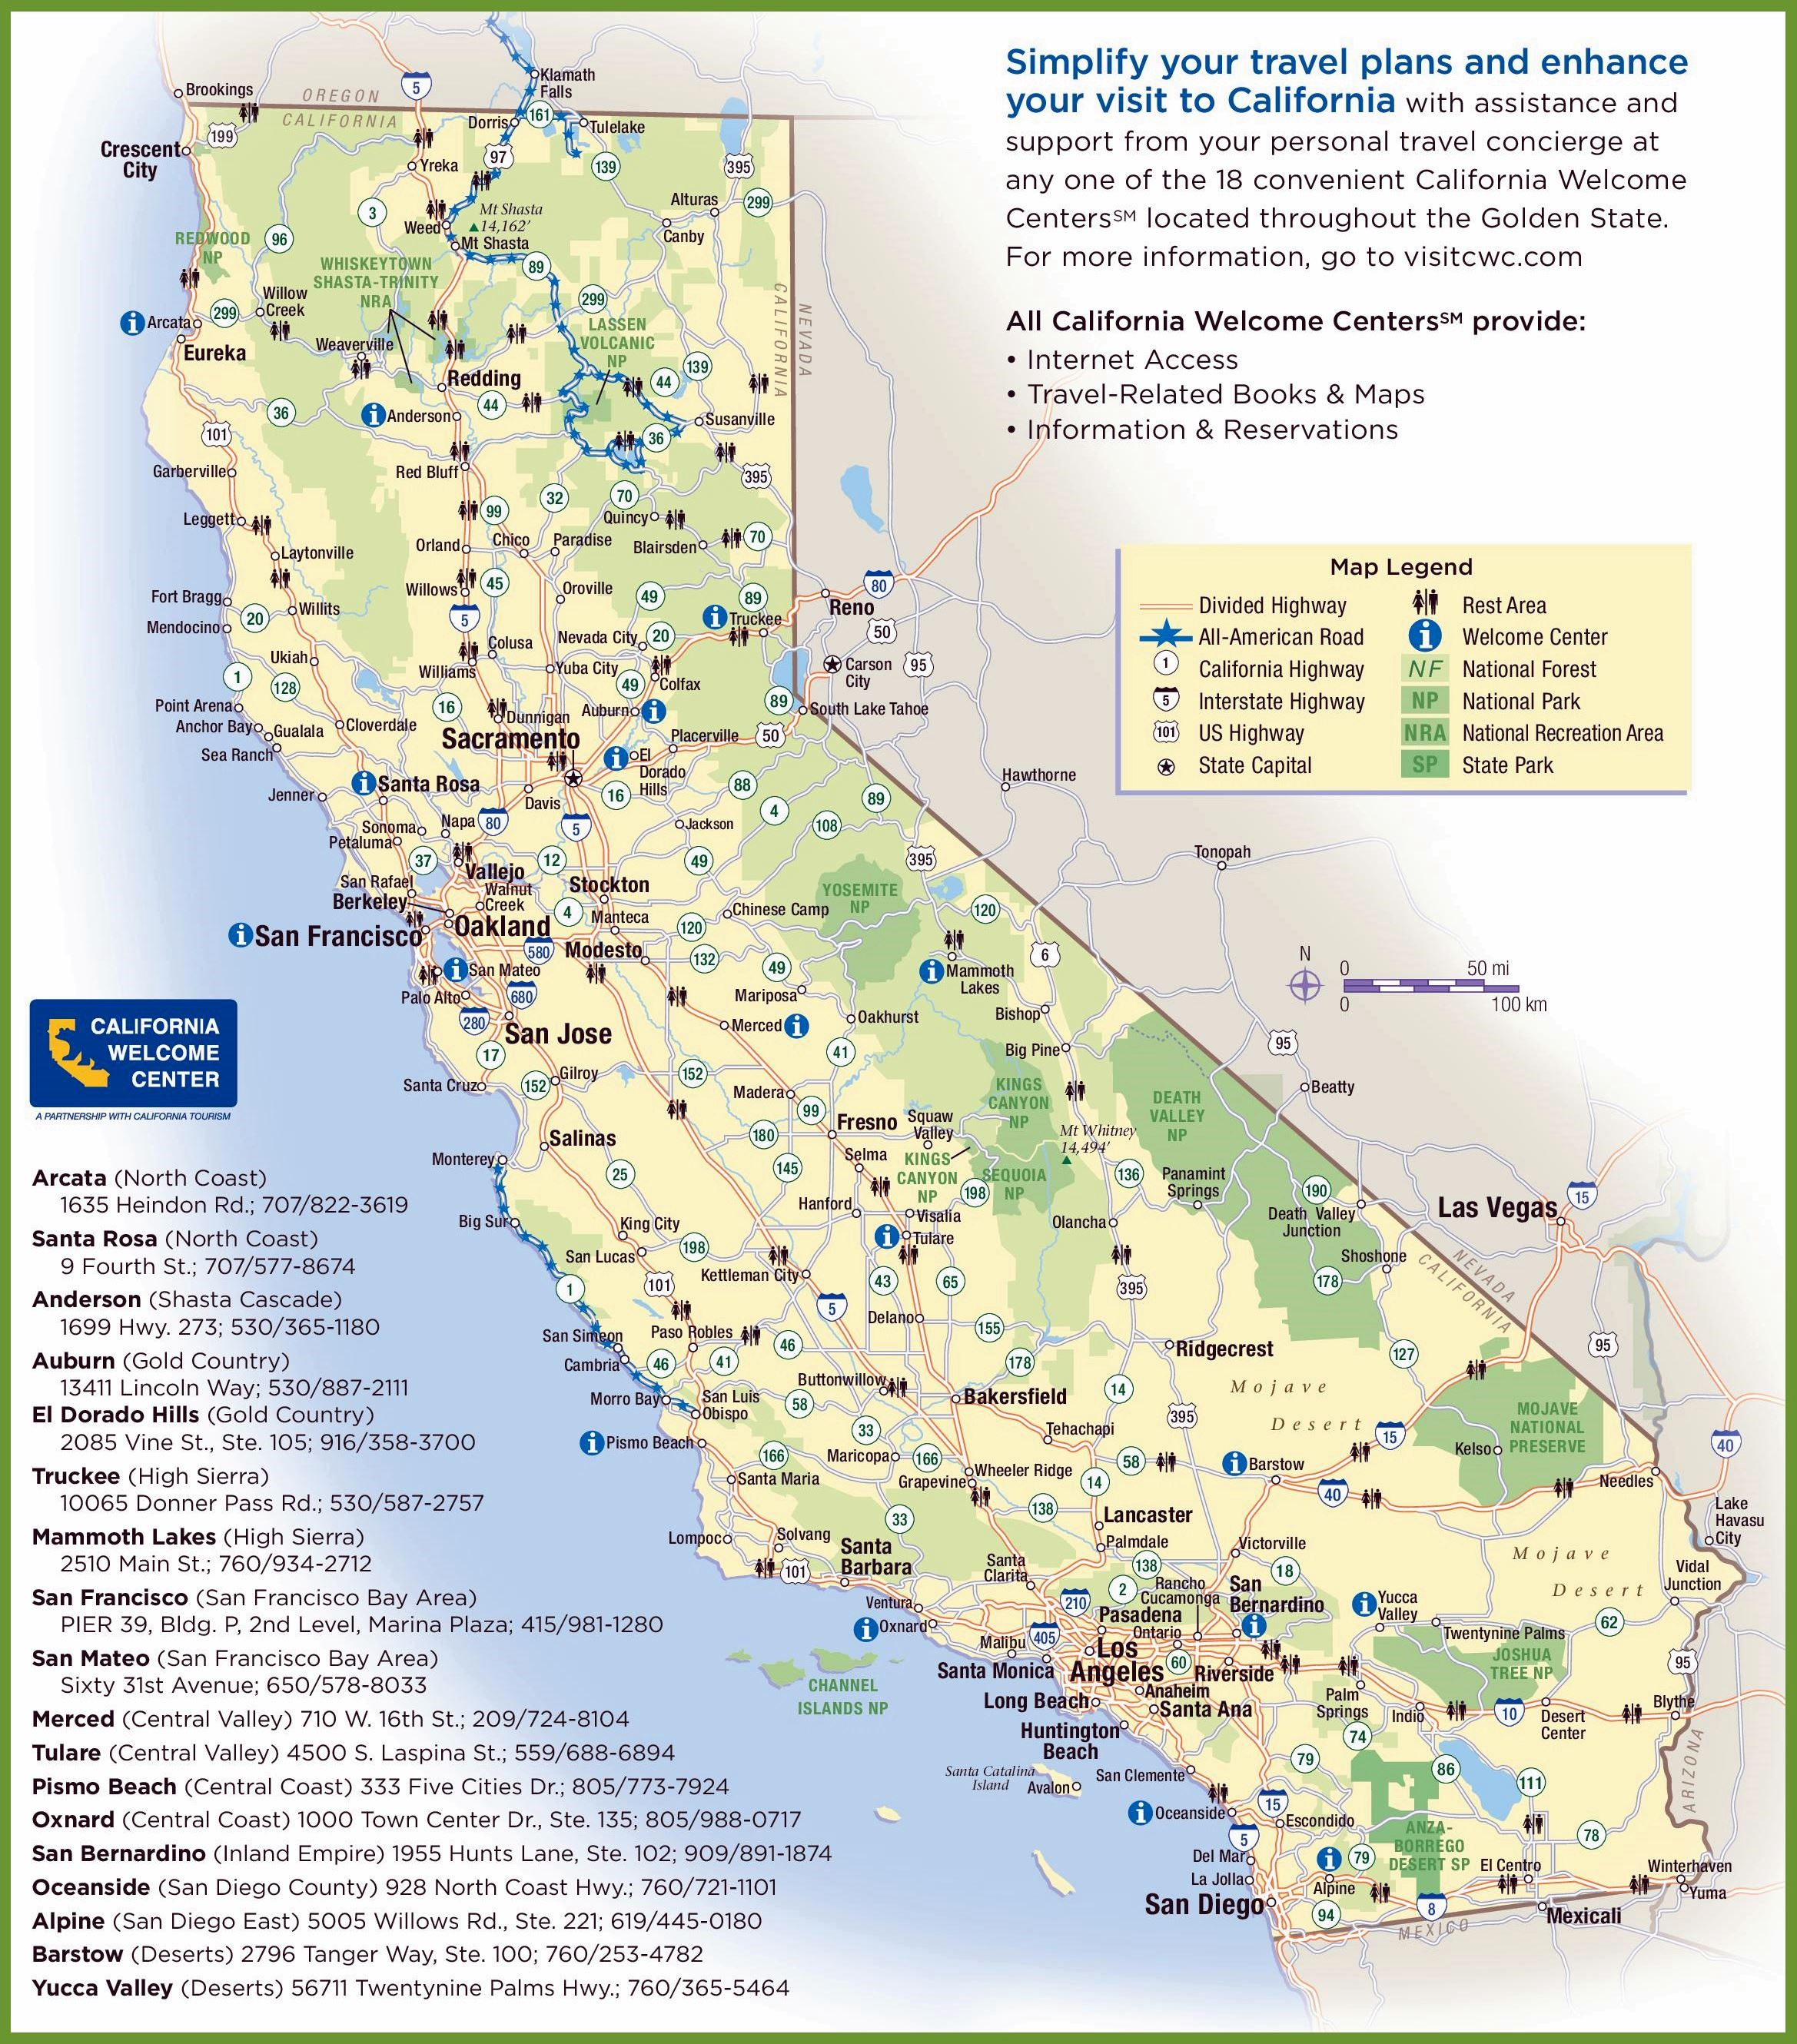 Large California Maps For Free Download And Print   High-Resolution - Map Of Southern California Cities